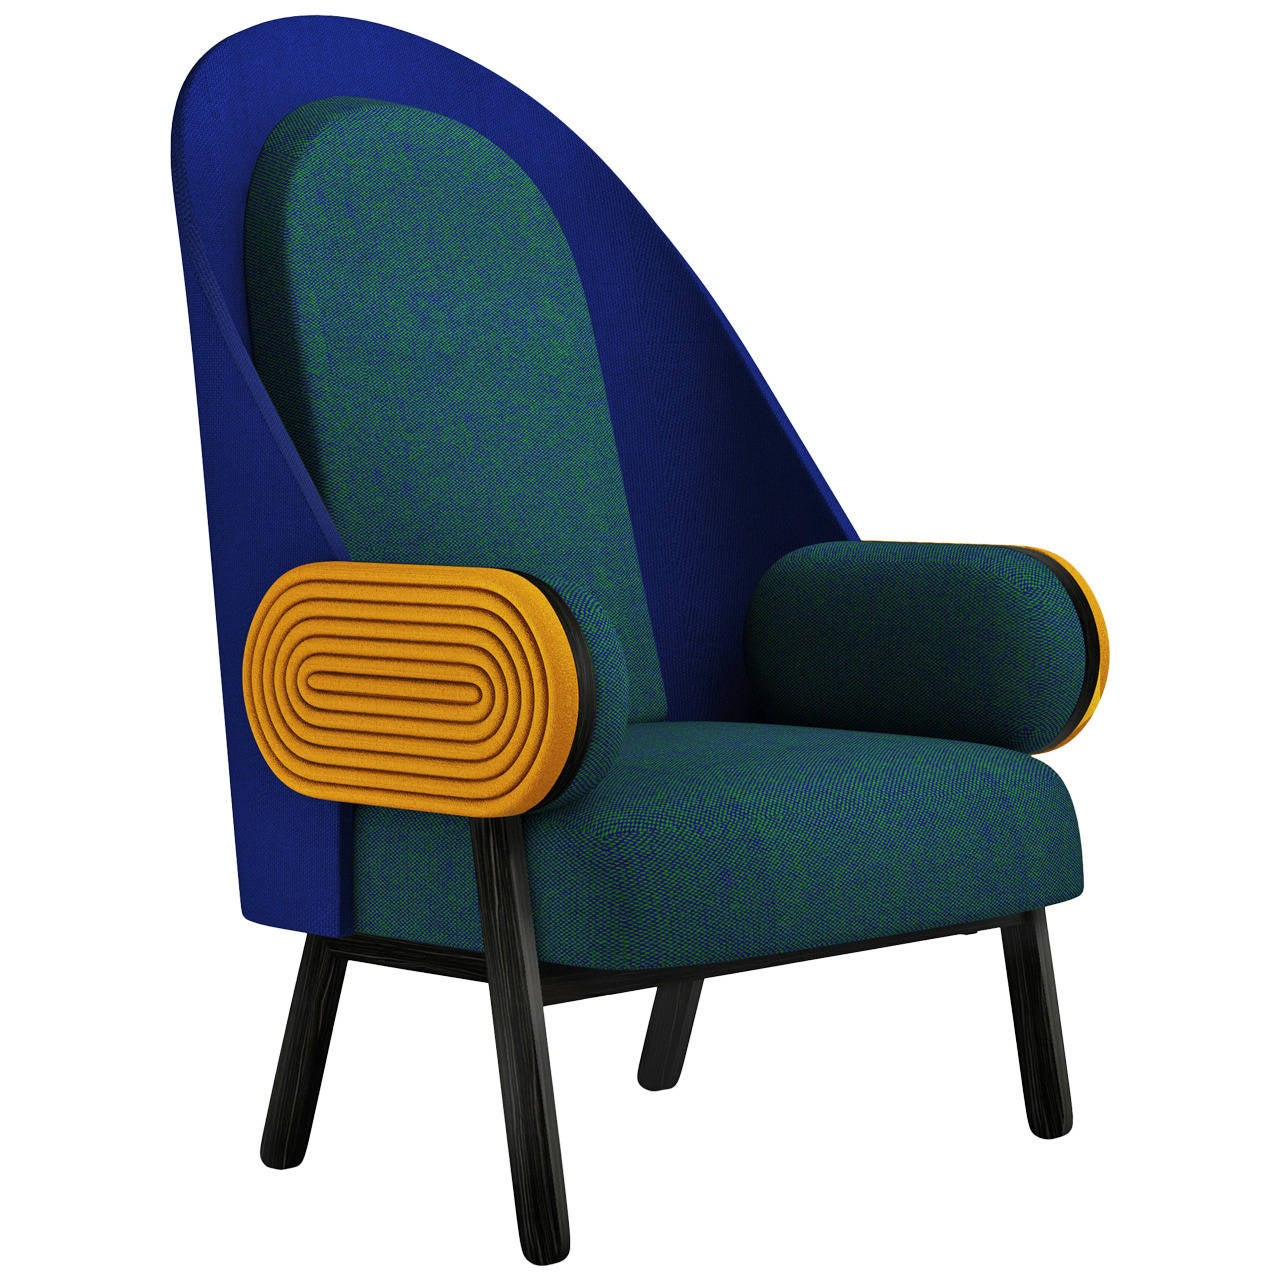 'MOON-D', a Contemporary Armchair with a Vintage Twist - In Stock